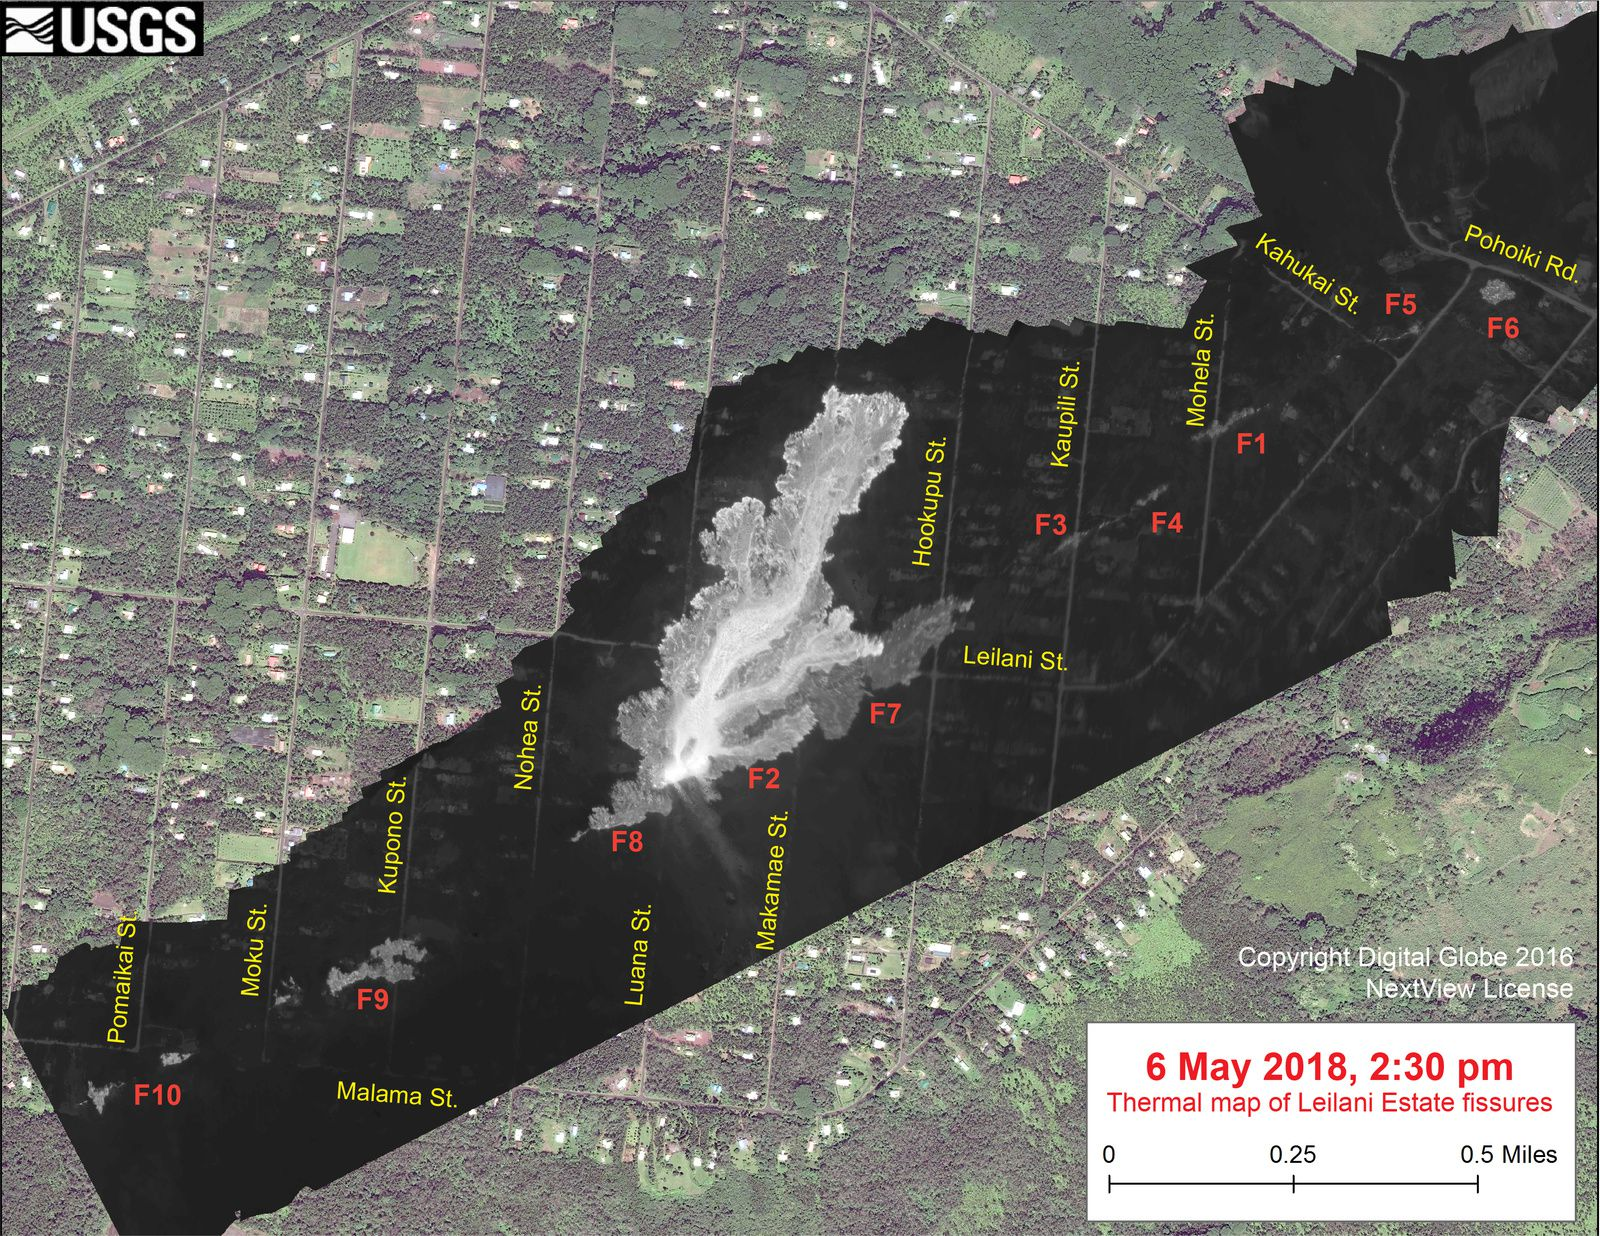 Progression of the lava between the two thermal photos of 05.05.18 / 10.45 and 06.05.18 / 2.30 pm - The temperature in the thermal image is displayed as grayscale values, the brightest pixels indicating the areas the warmer (the white shows the active breaks). - Doc. USGS / Digital Globe